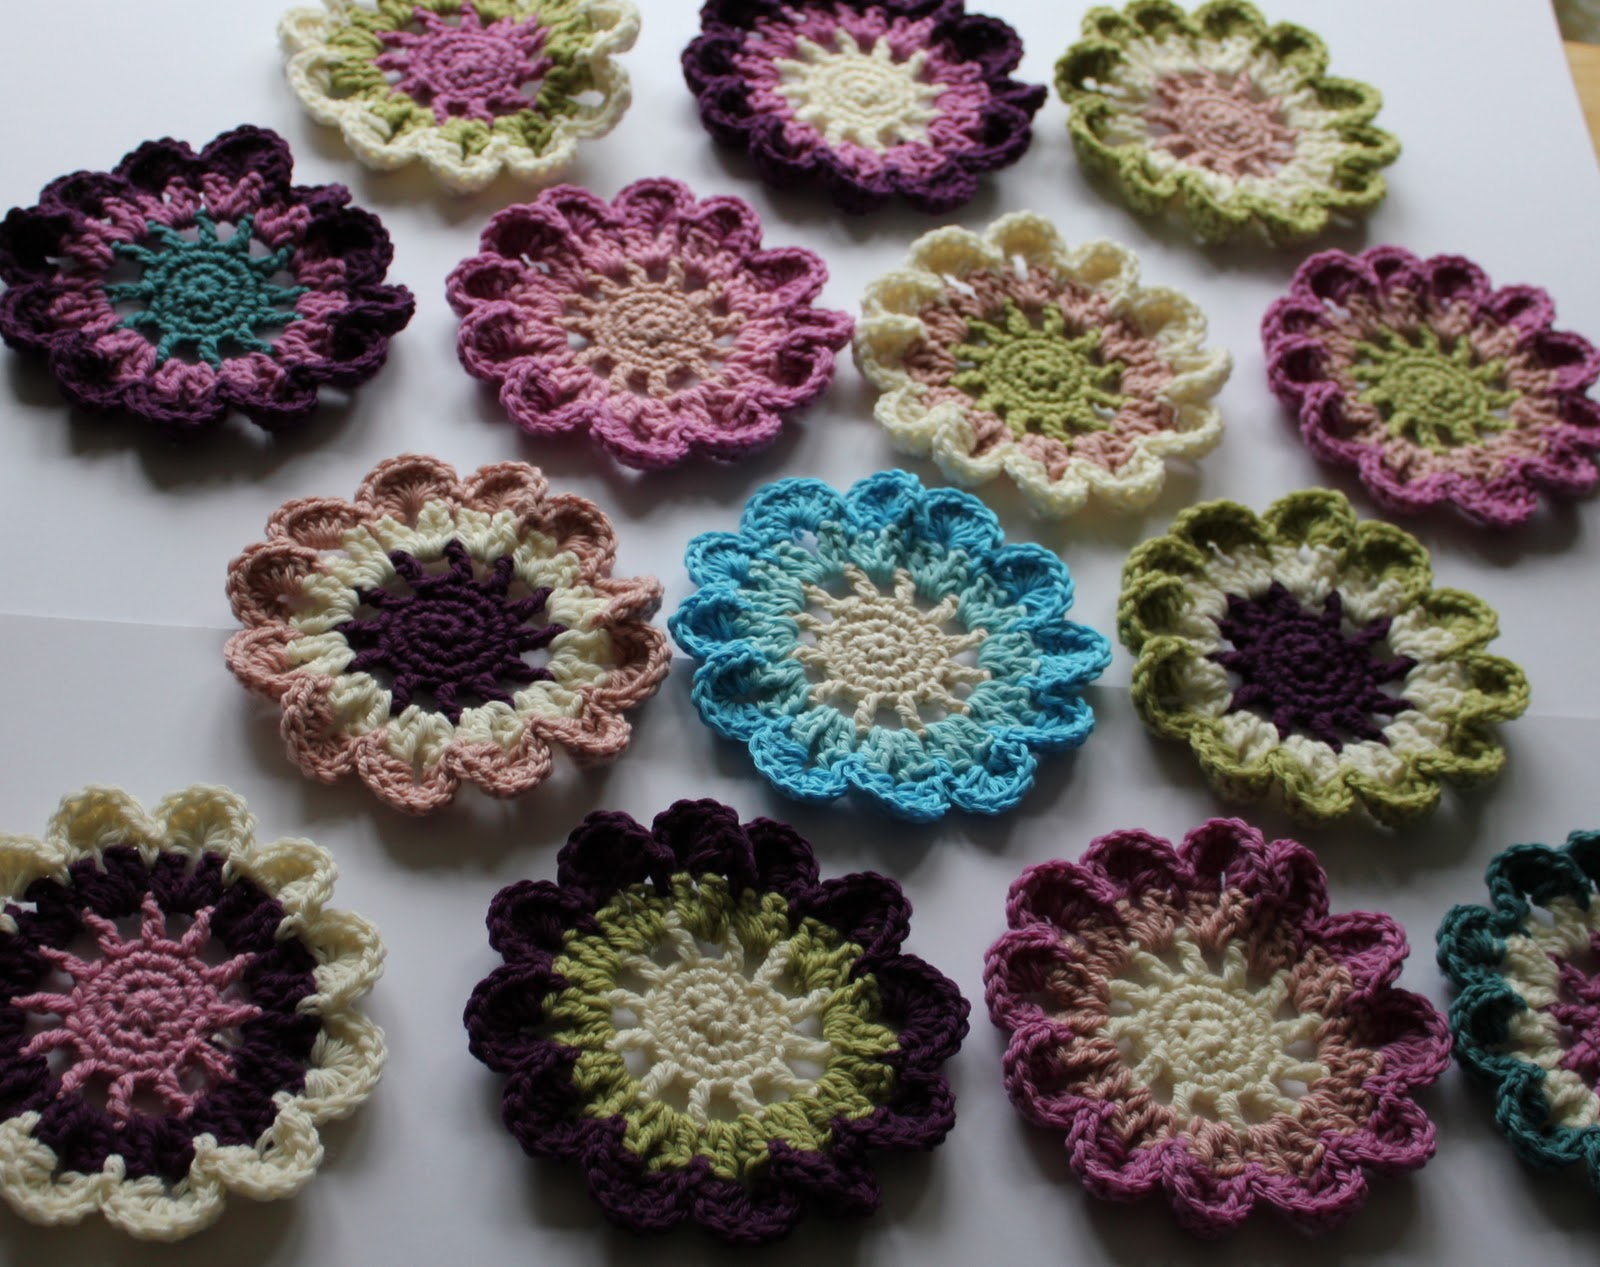 Crochet Flower Blanket Pattern Free : 404 (Page Not Found) Error - Ever feel like youre in the ...